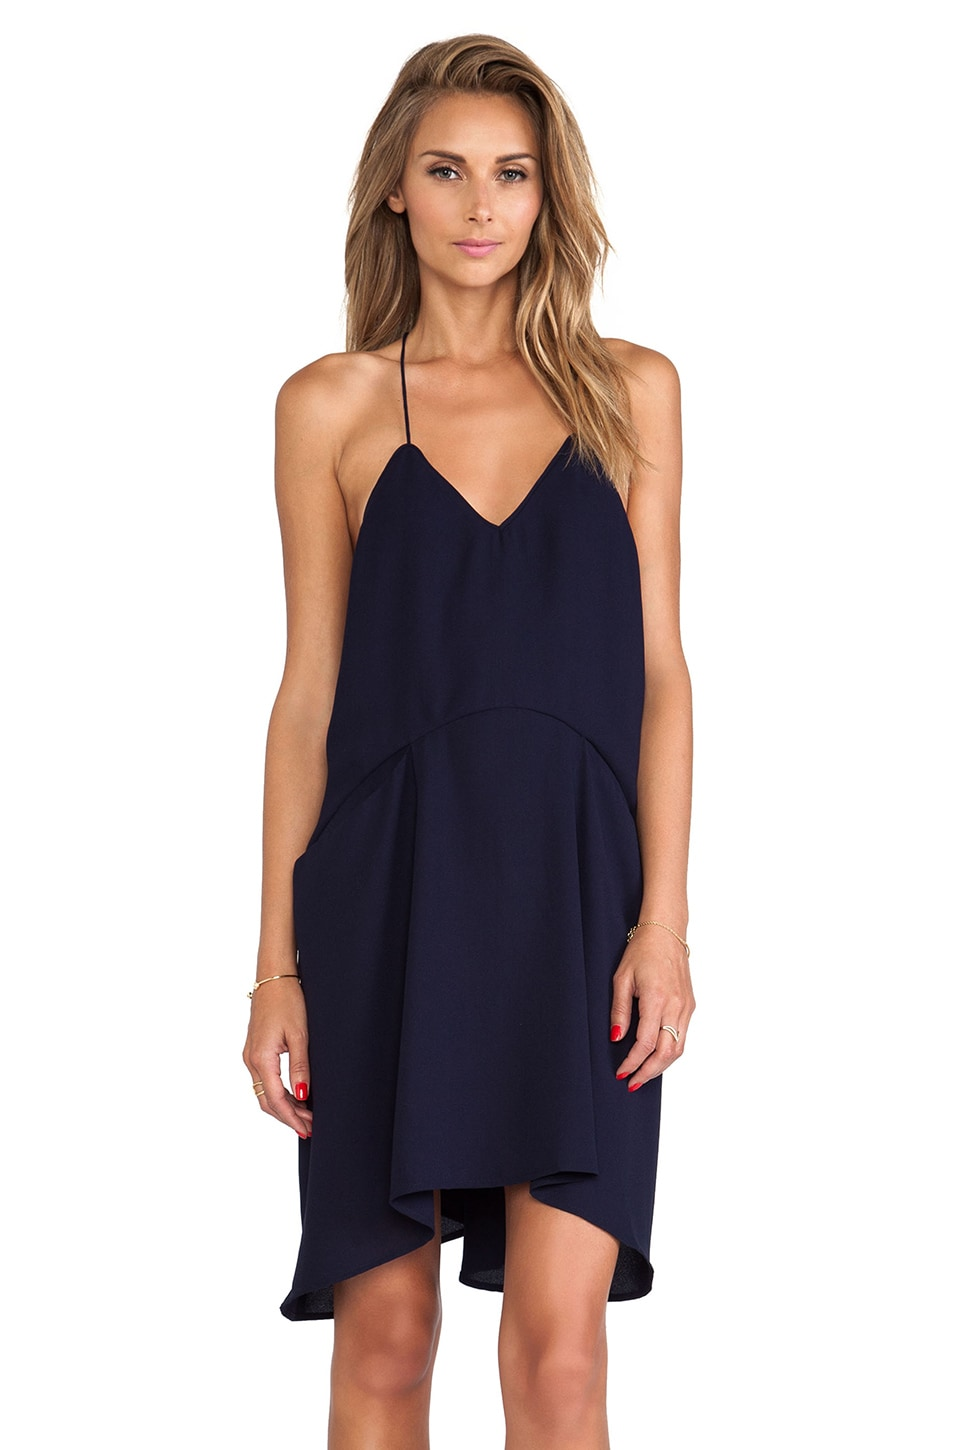 C/MEO Broken Strings Dress in Navy